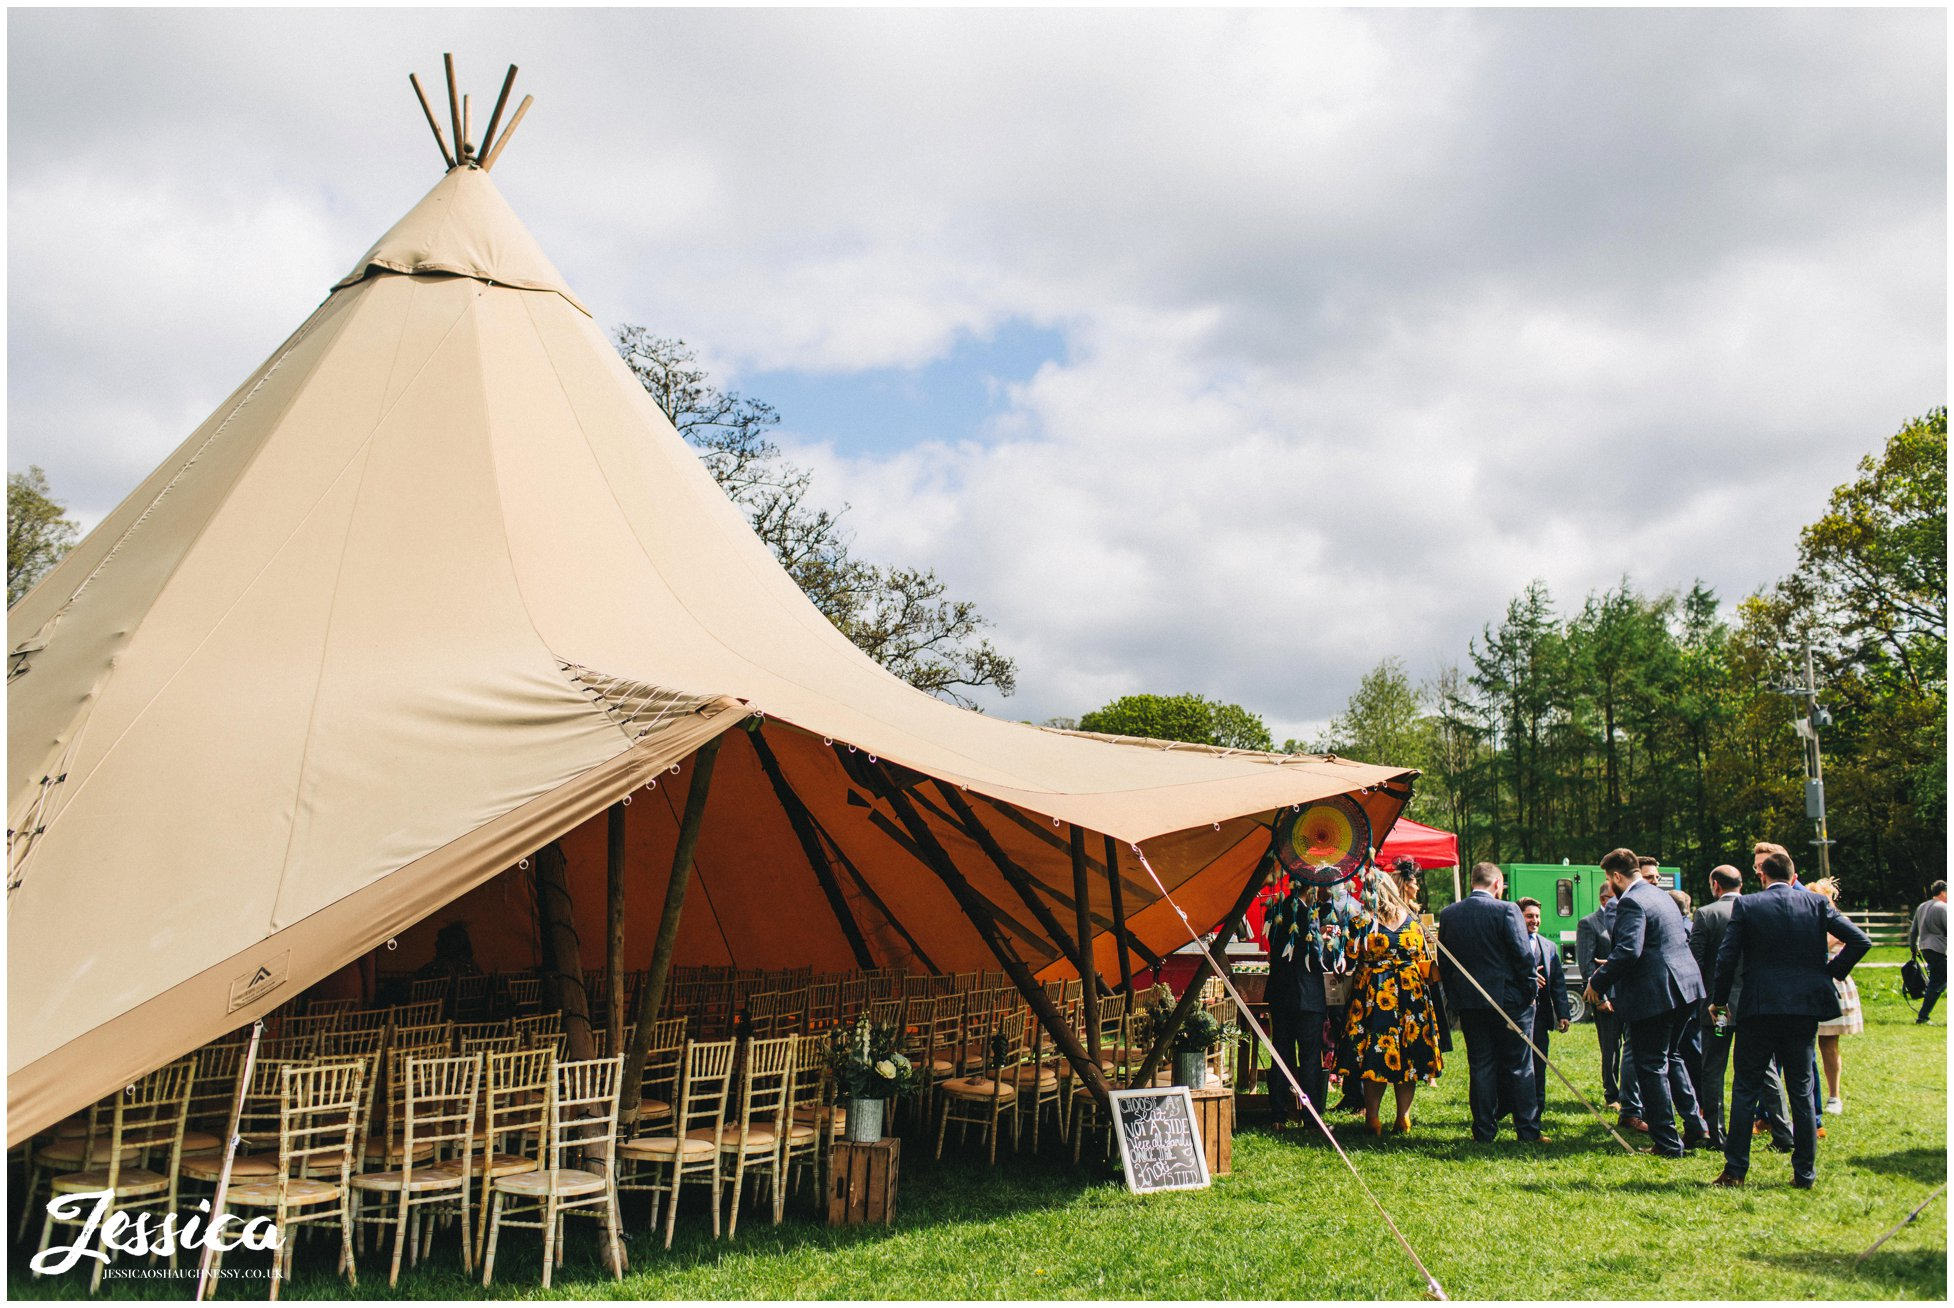 tipi set up ready for the wedding ceremony in the lakes